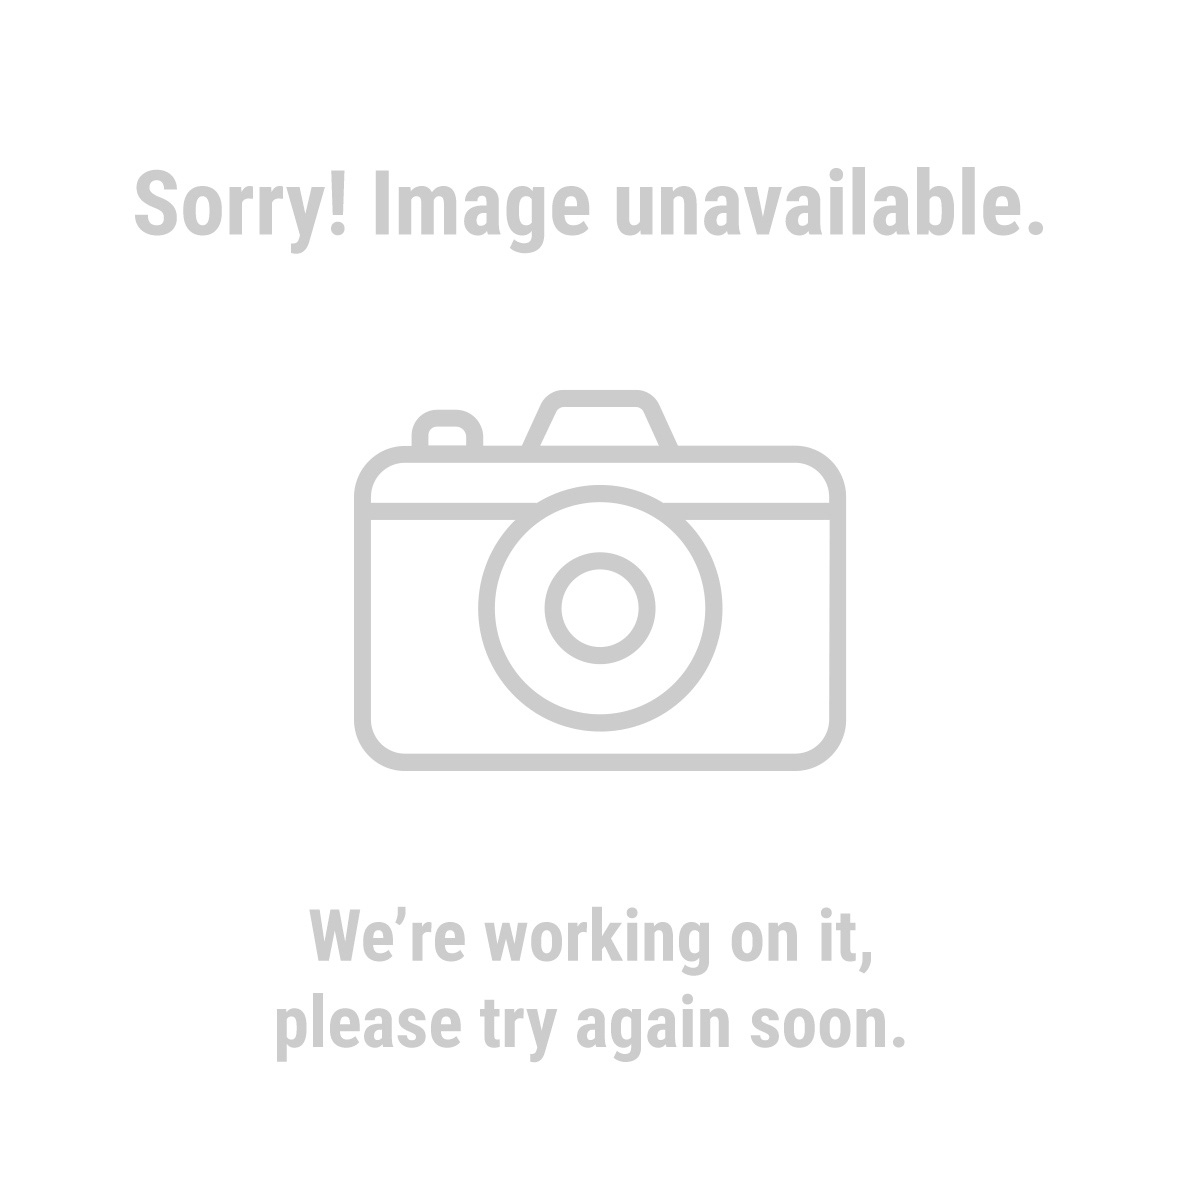 98231 Pack of 10 9mm Replacement Snap Blades